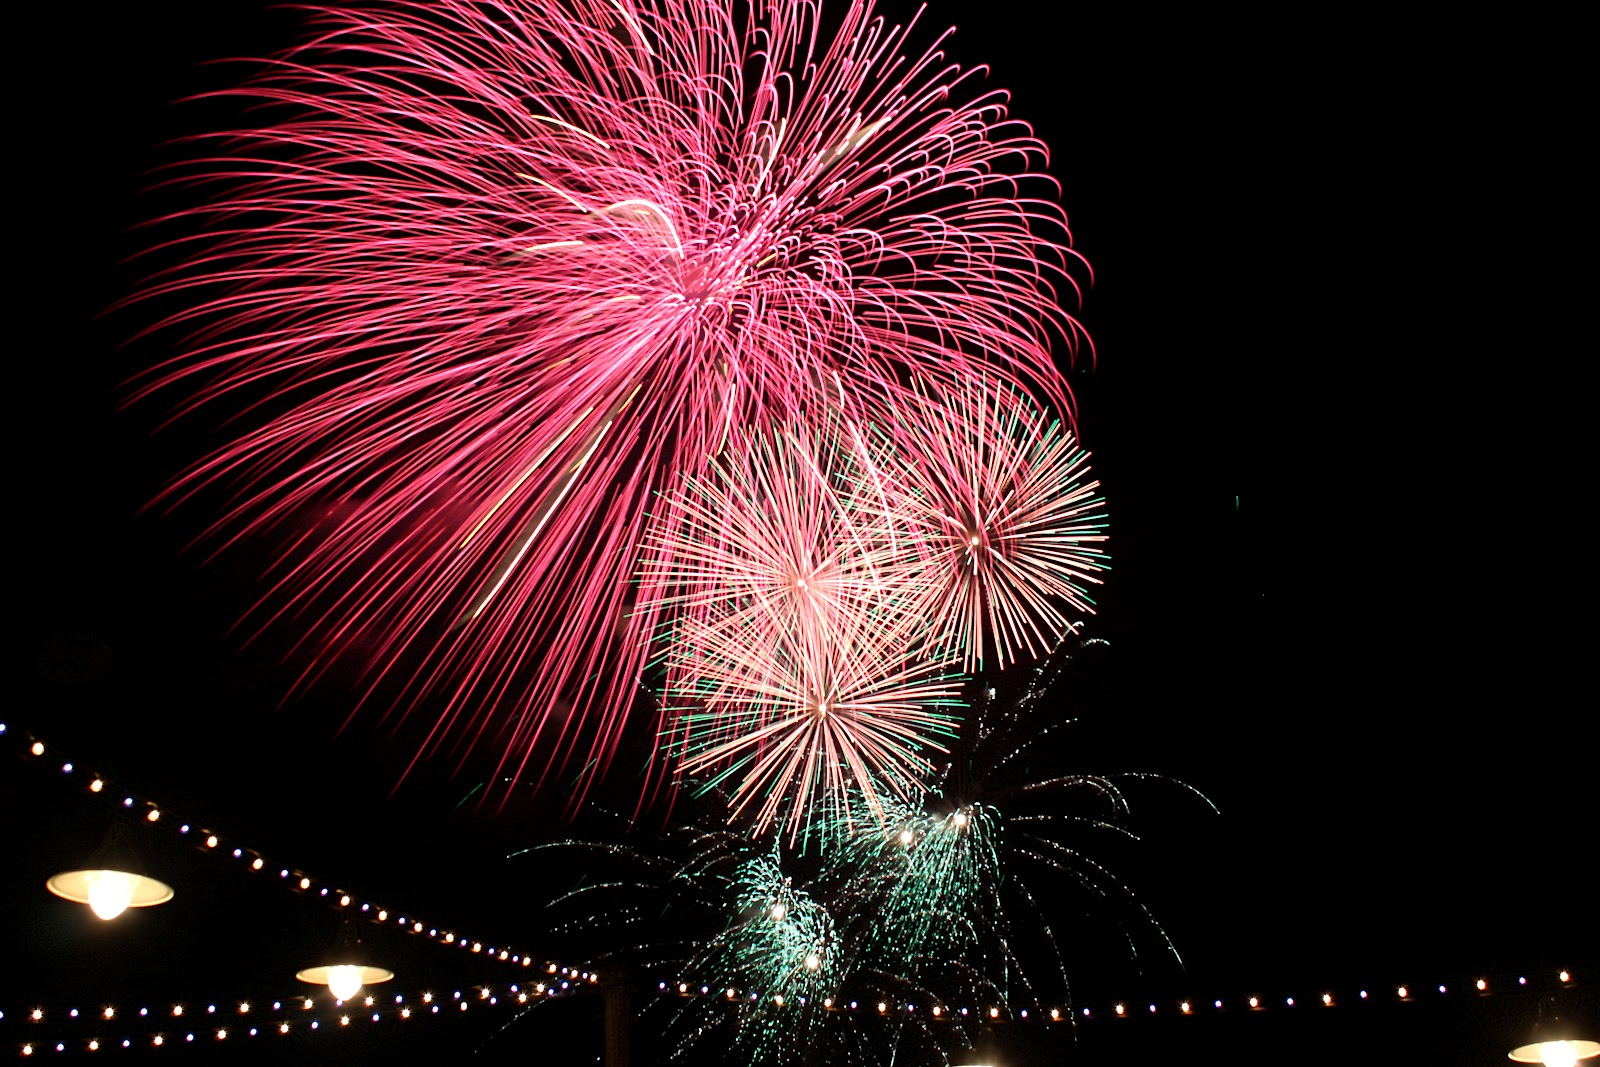 fireworks animation in flash - photo #7